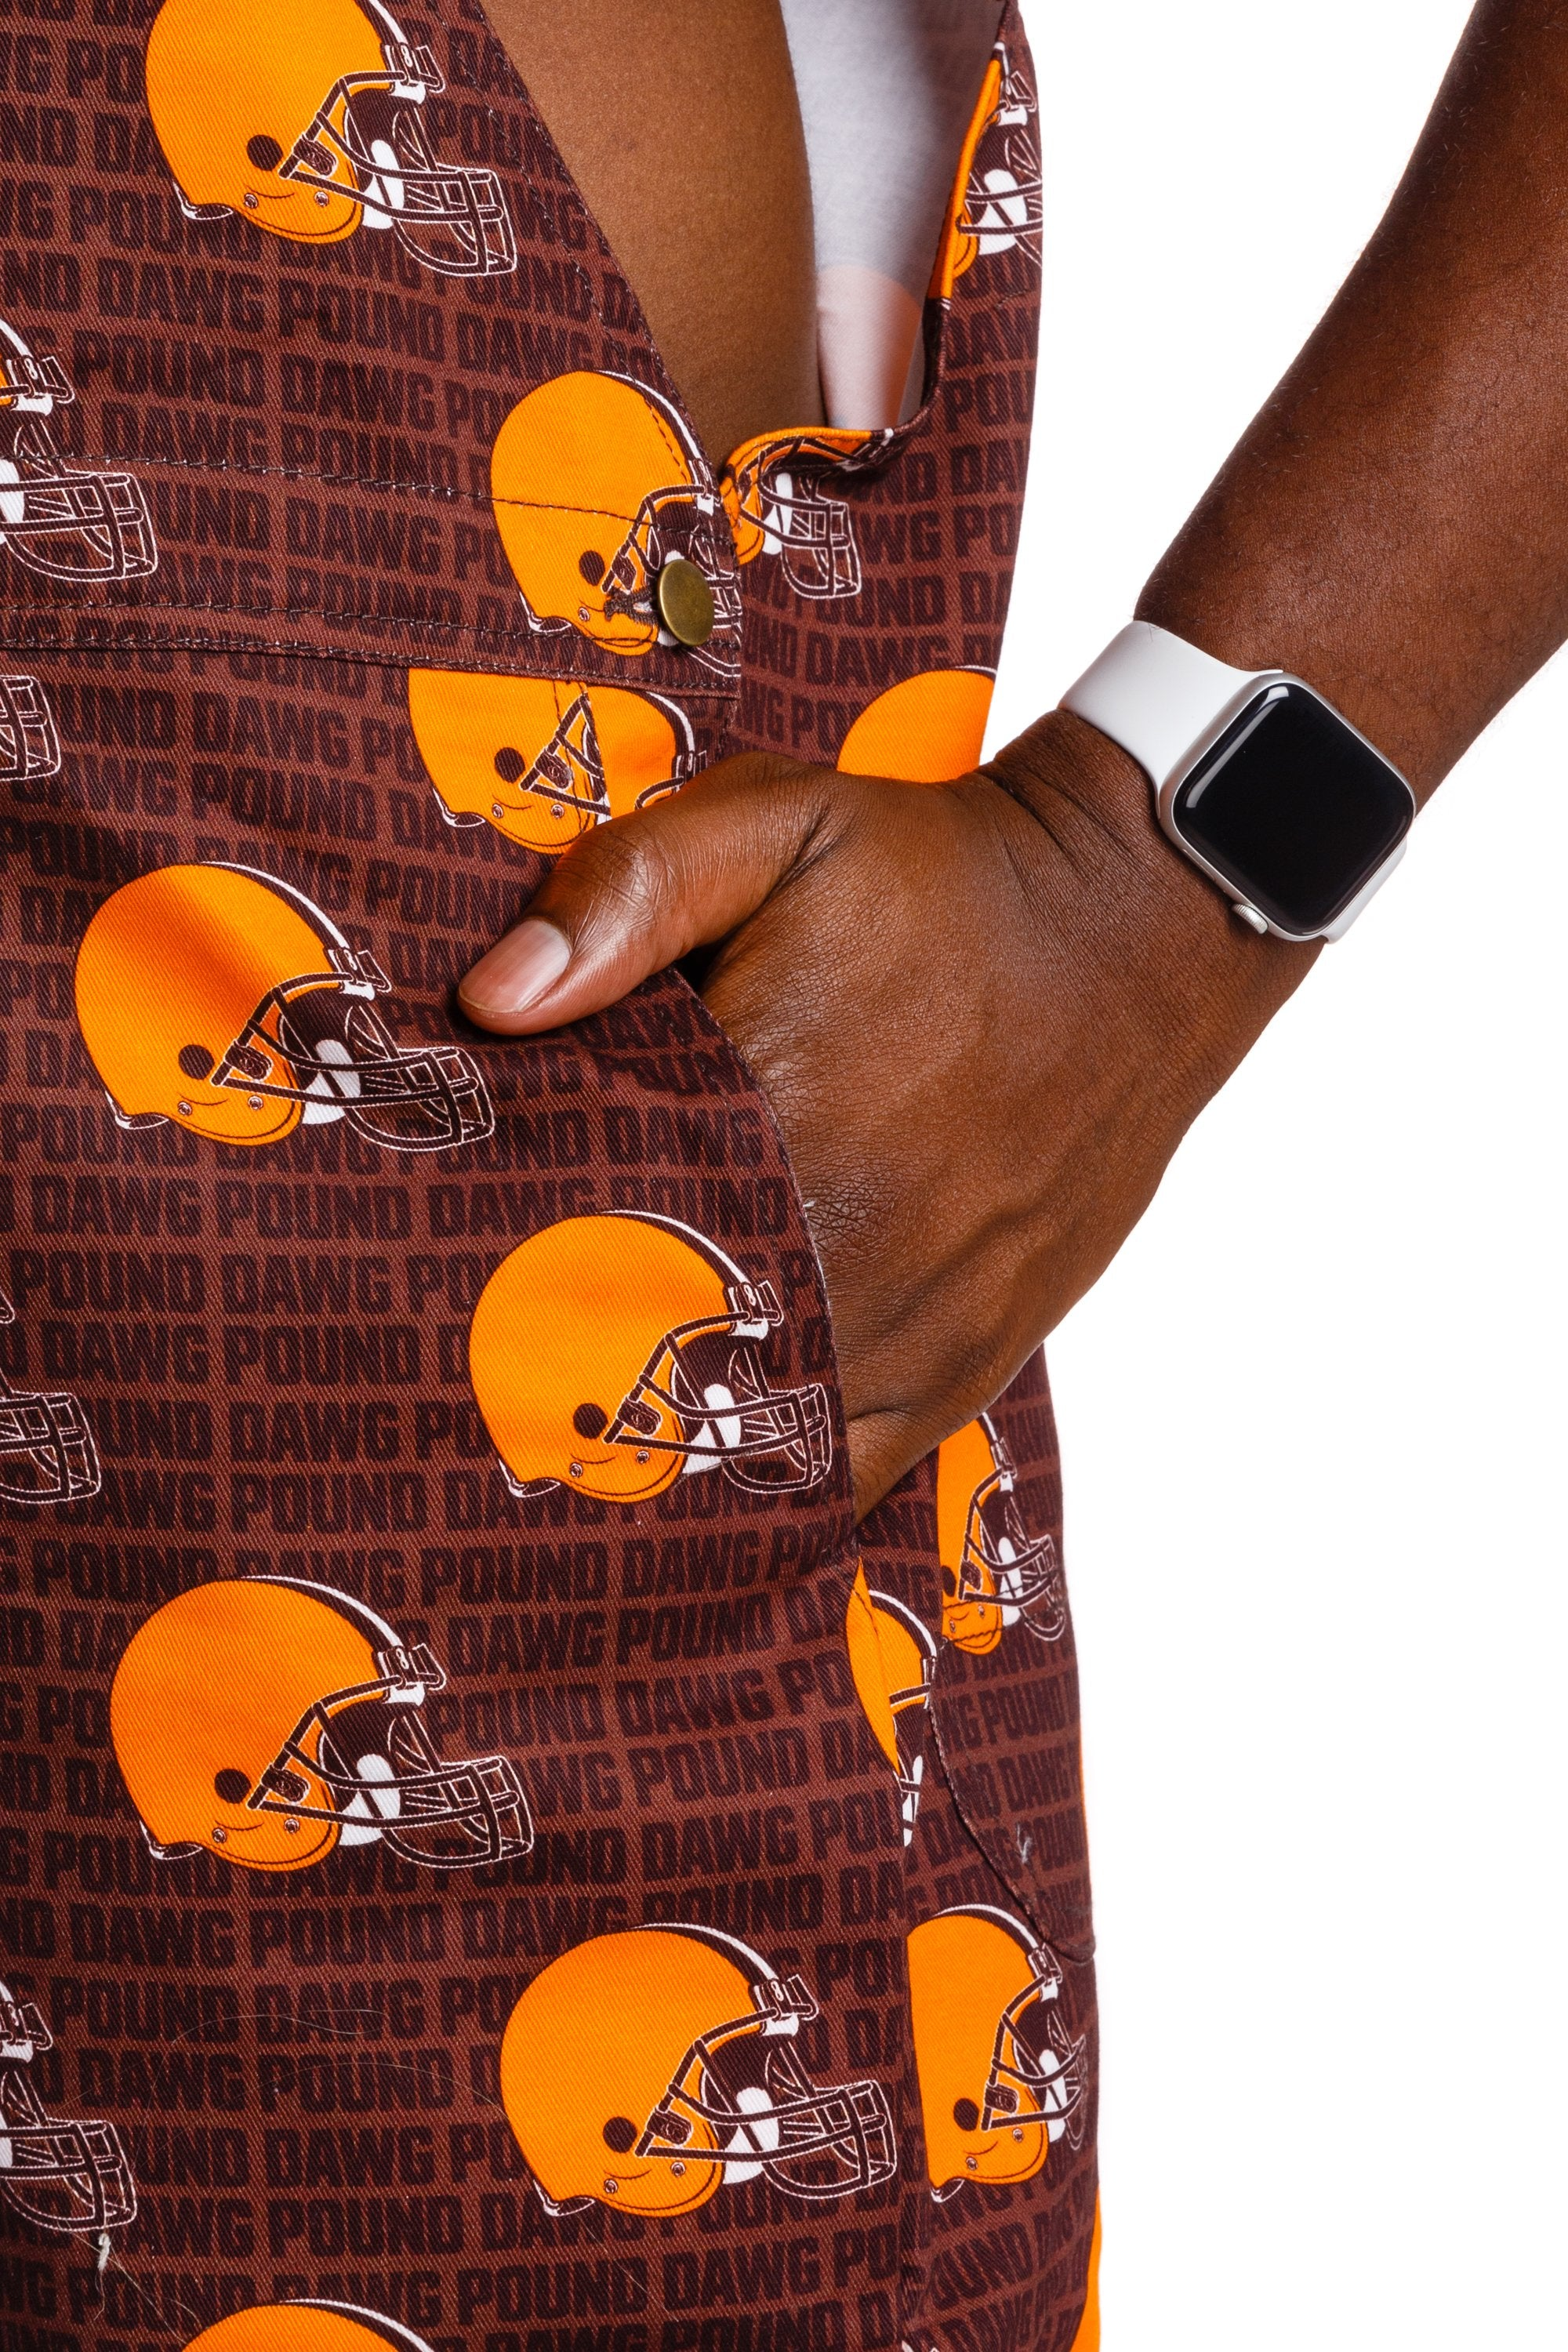 Pocket cleveland browns overalls